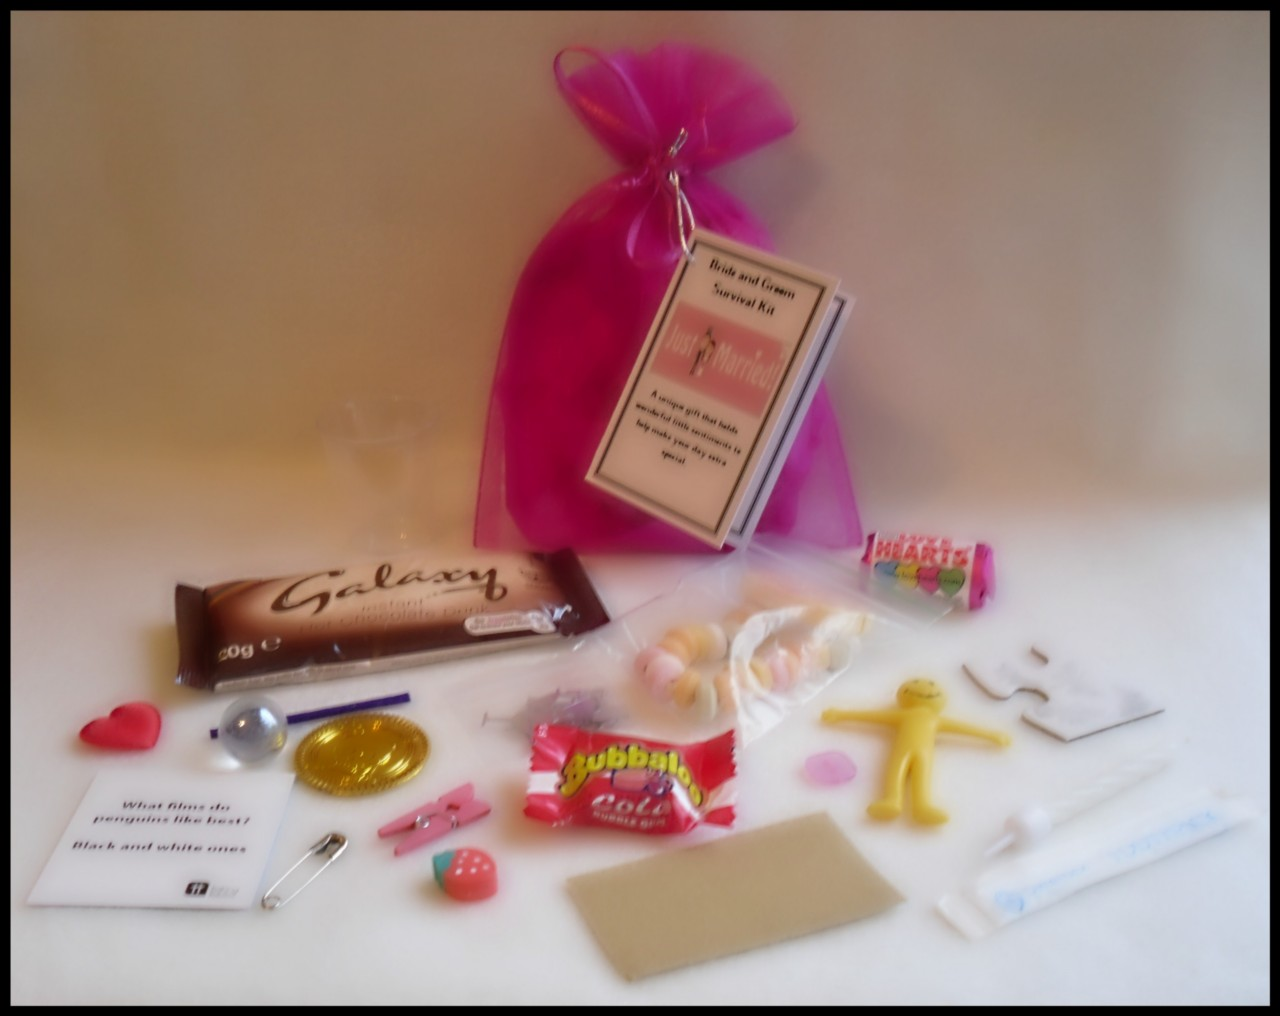 Quirky Wedding Gifts Uk: Bride And Groom Novelty Survival Kit. An Unusual Wedding